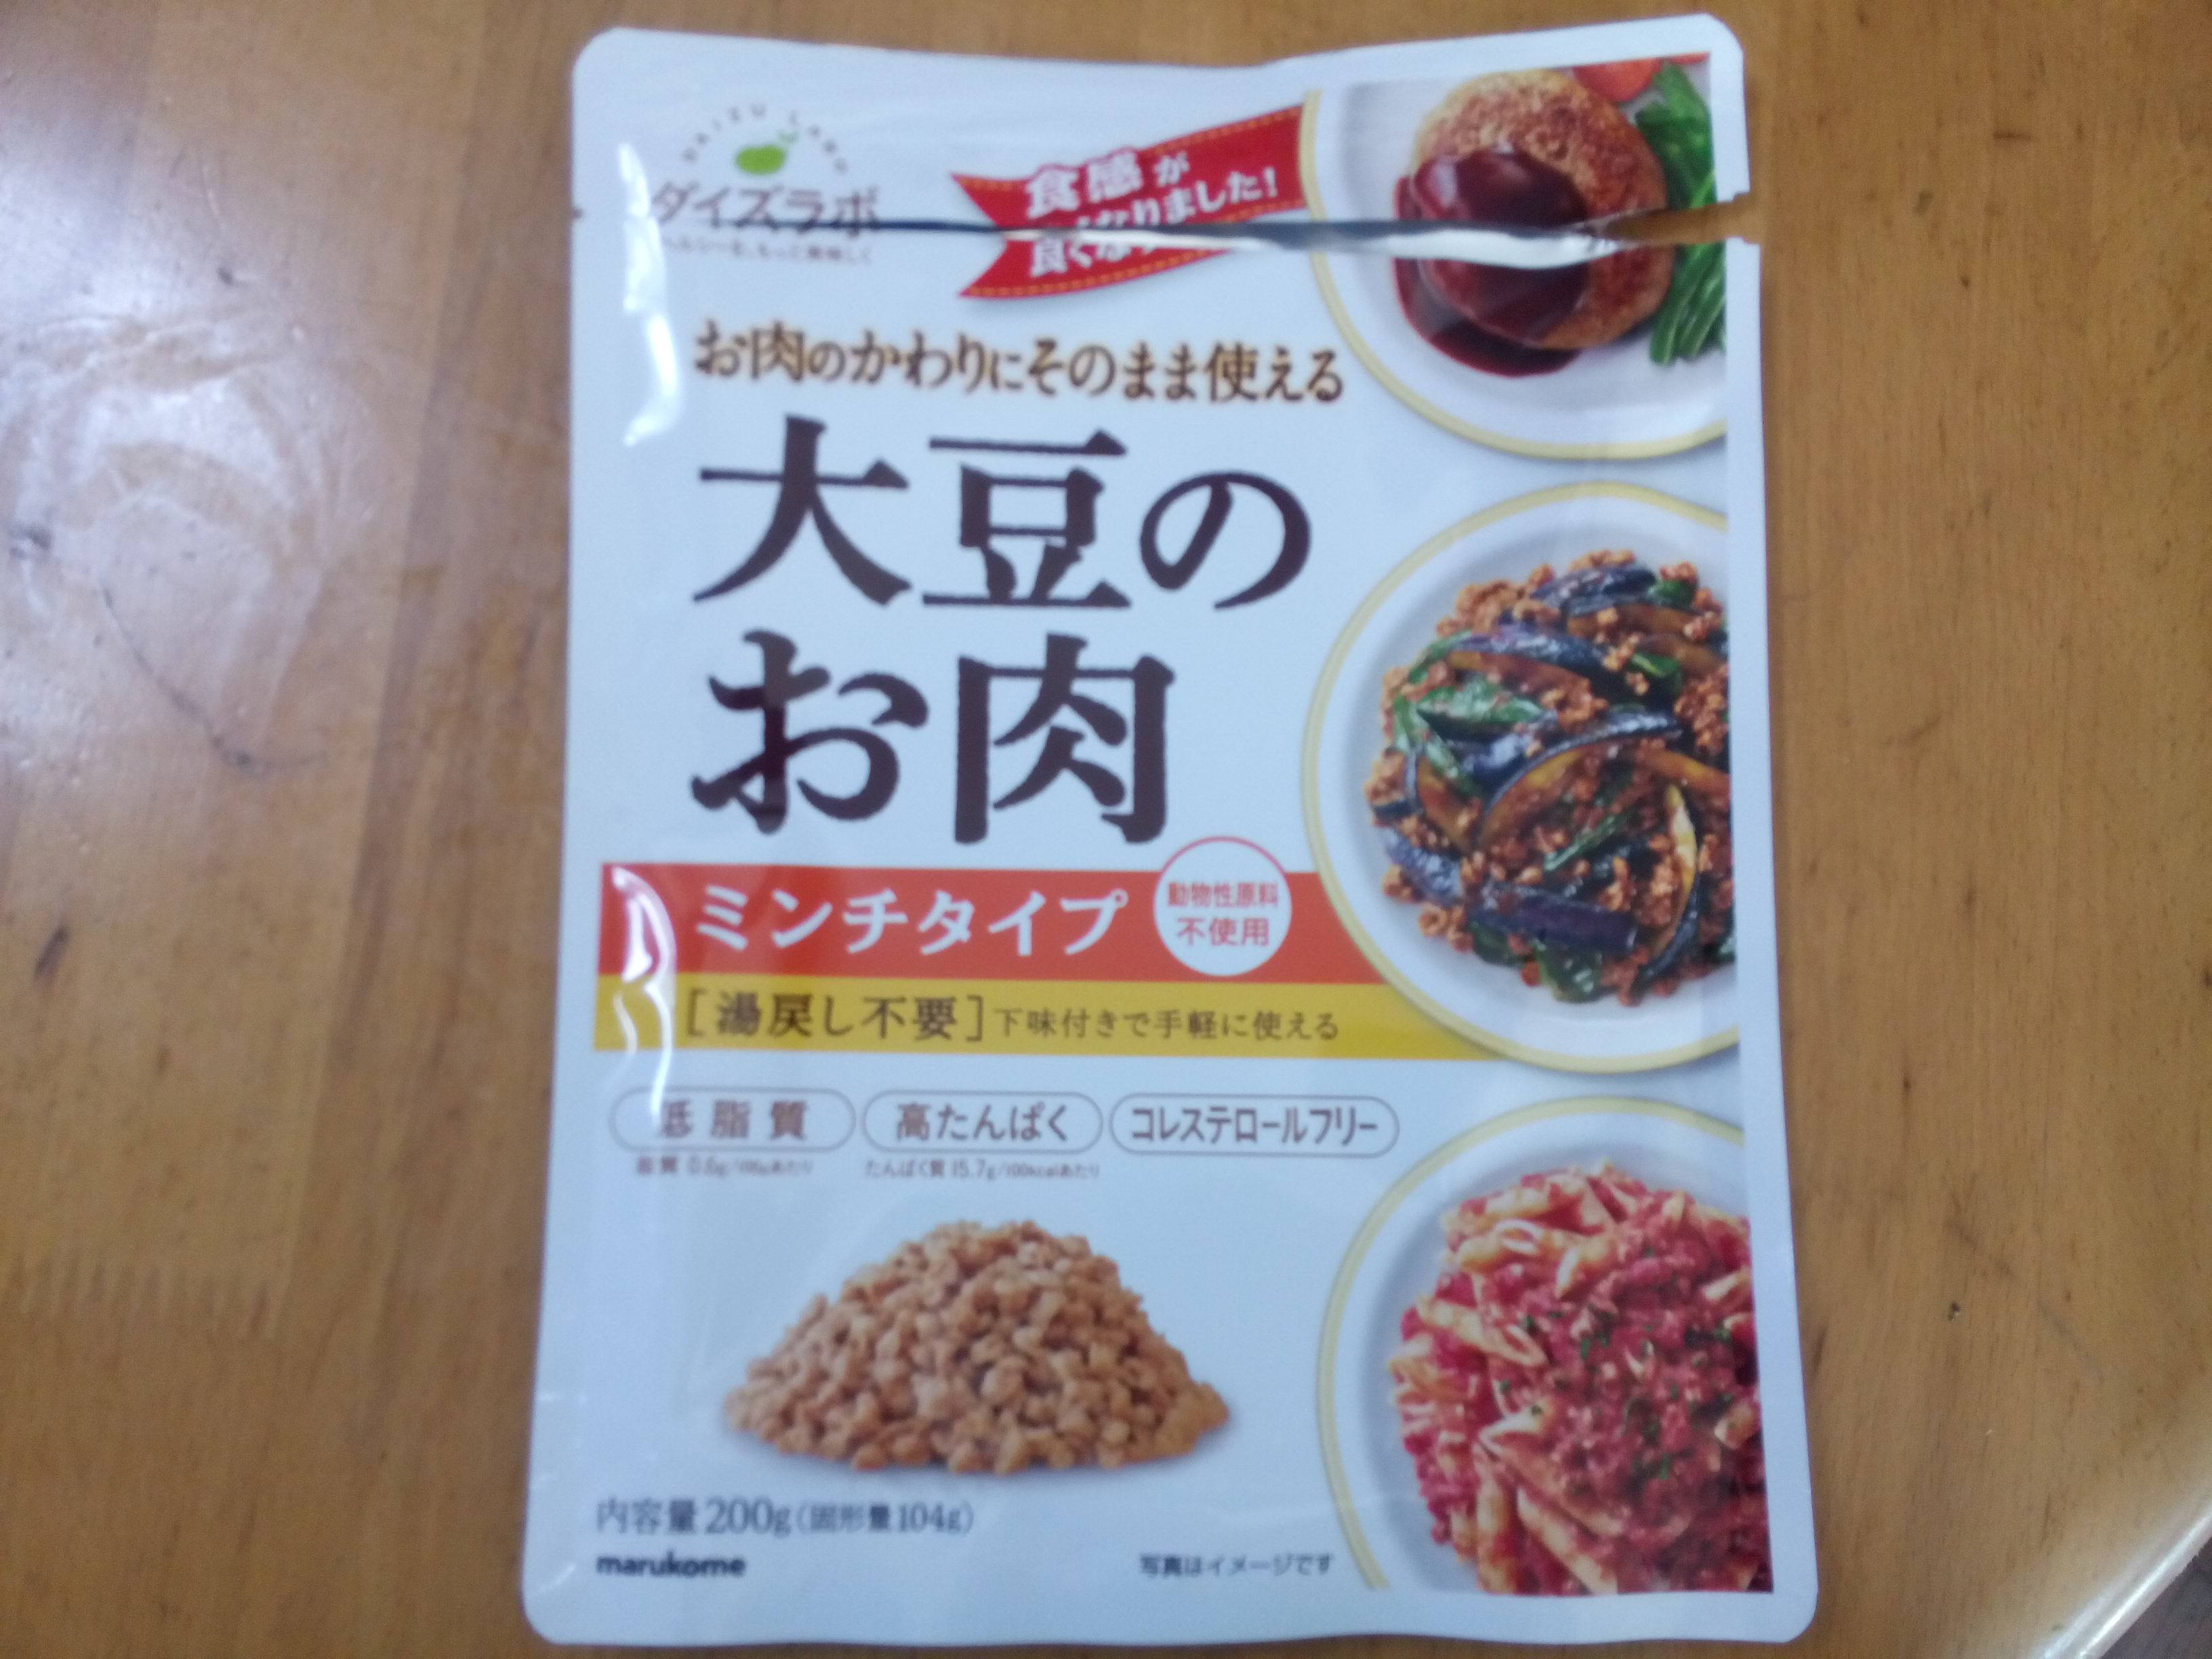 Soy meat. In Seiyu, it comes in small chunks (like ground meat) or bigger ones. There's not much in a pack, and it's stored in liquid. Dried would probably be more economical.